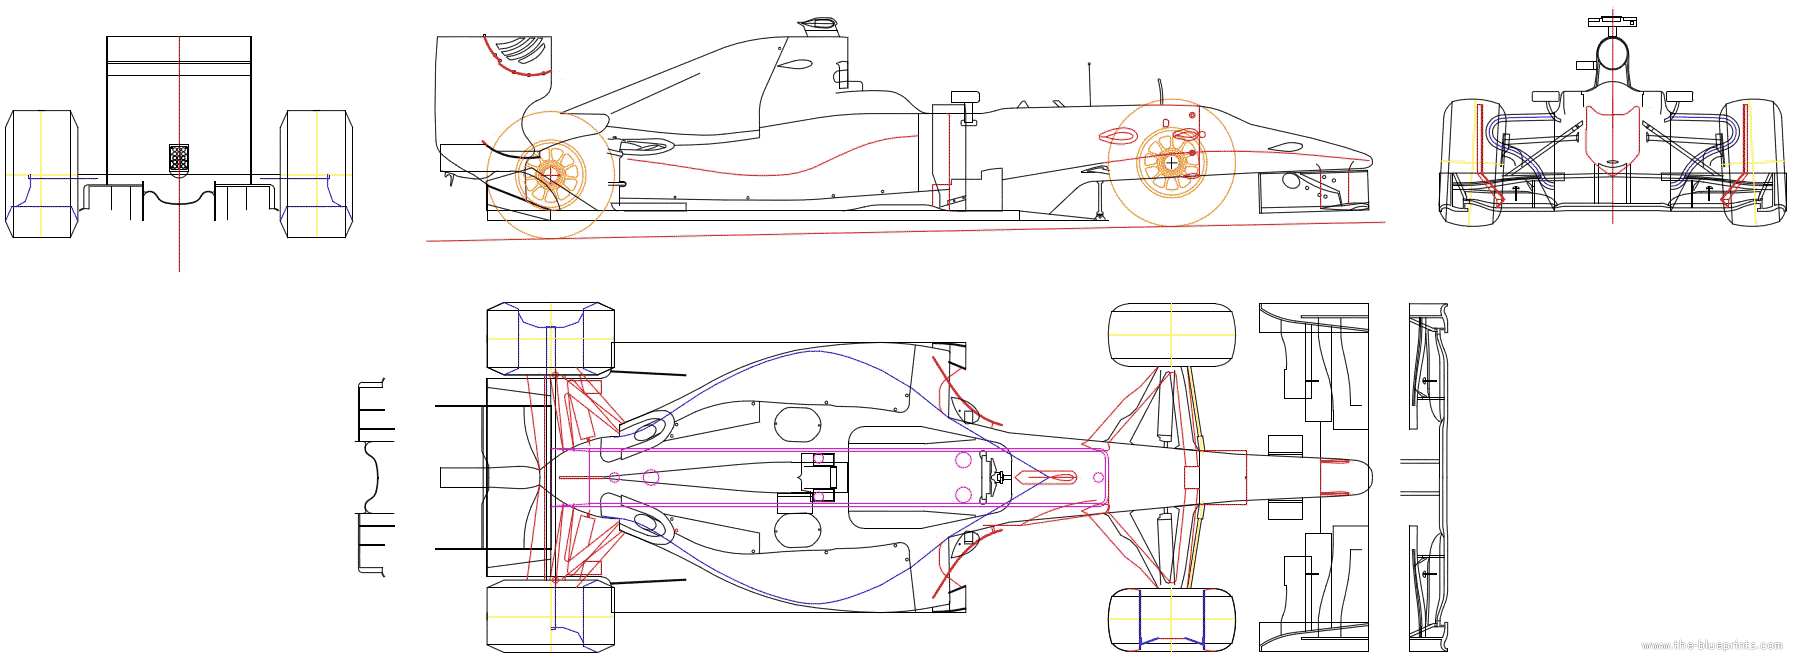 2010 Other Hispania F110 F1 Formula Blueprints Free Outlines